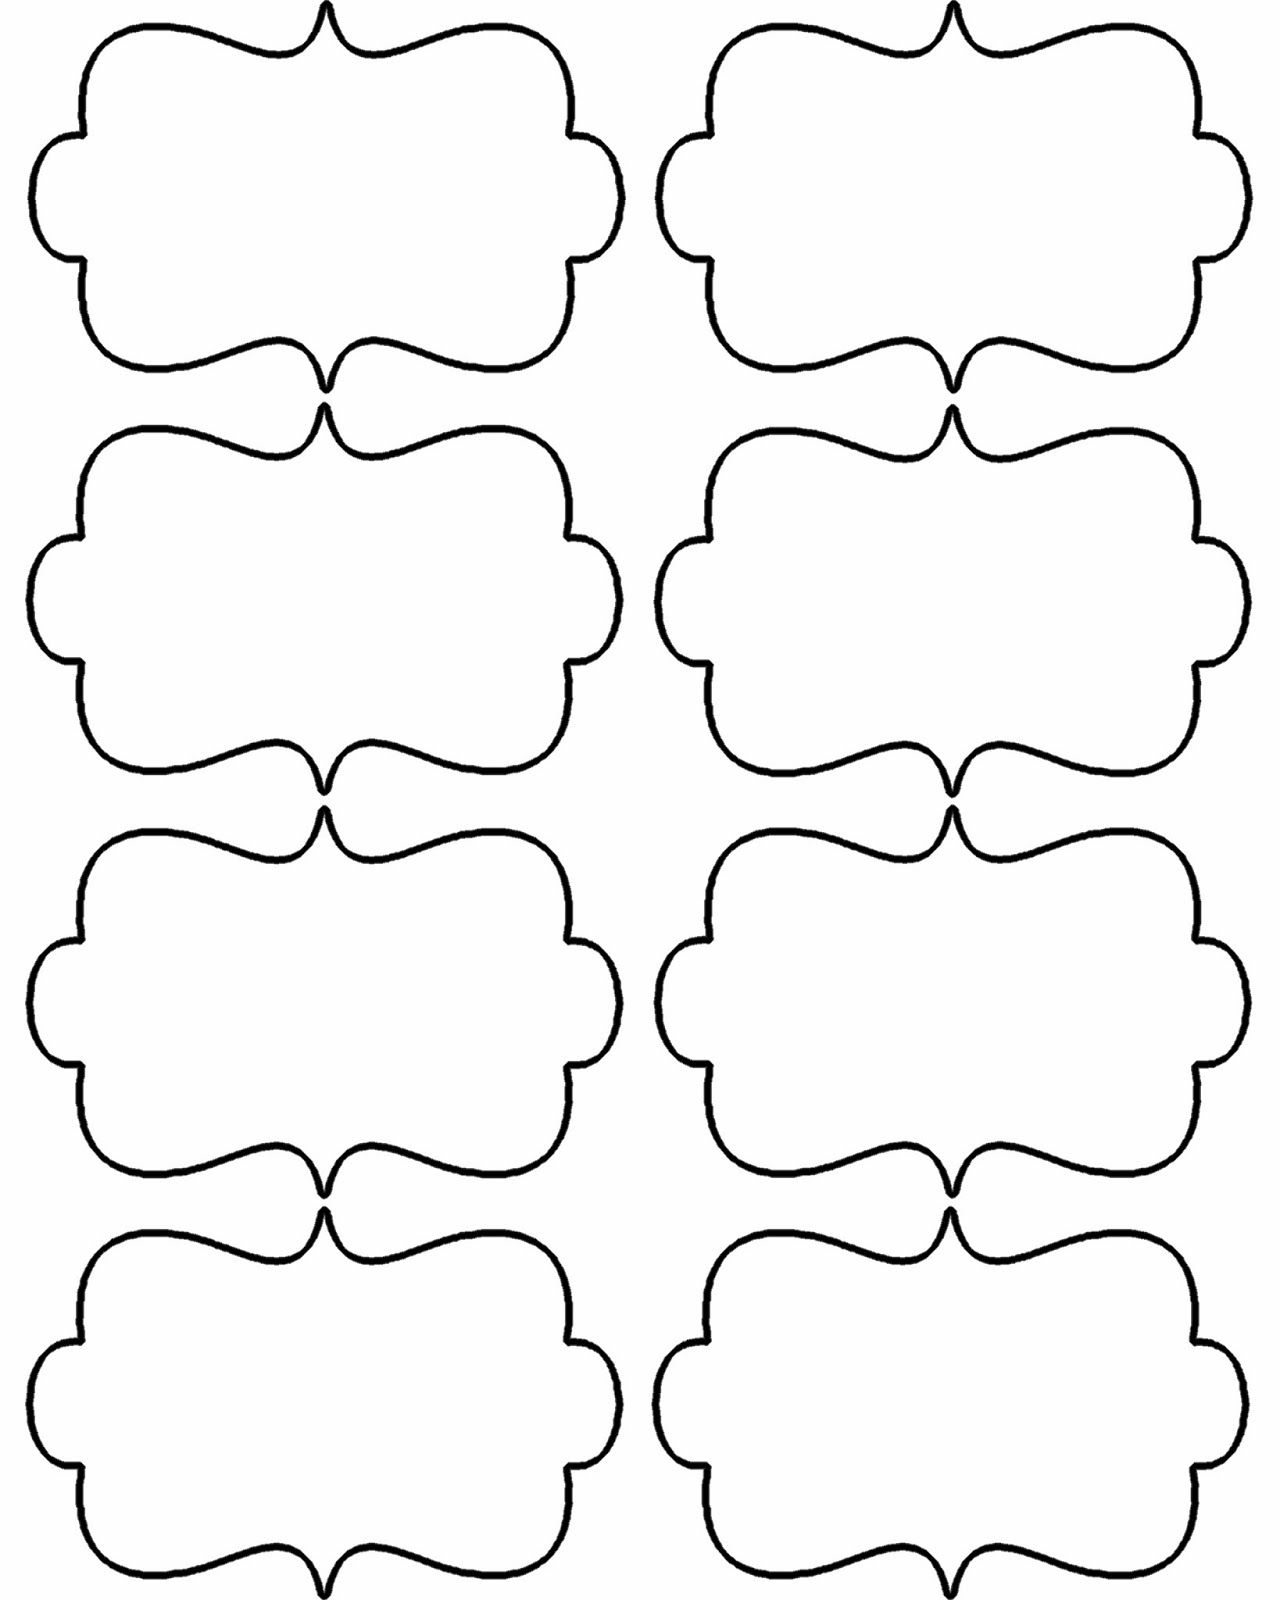 It is an image of Fan Printable Shapes Template